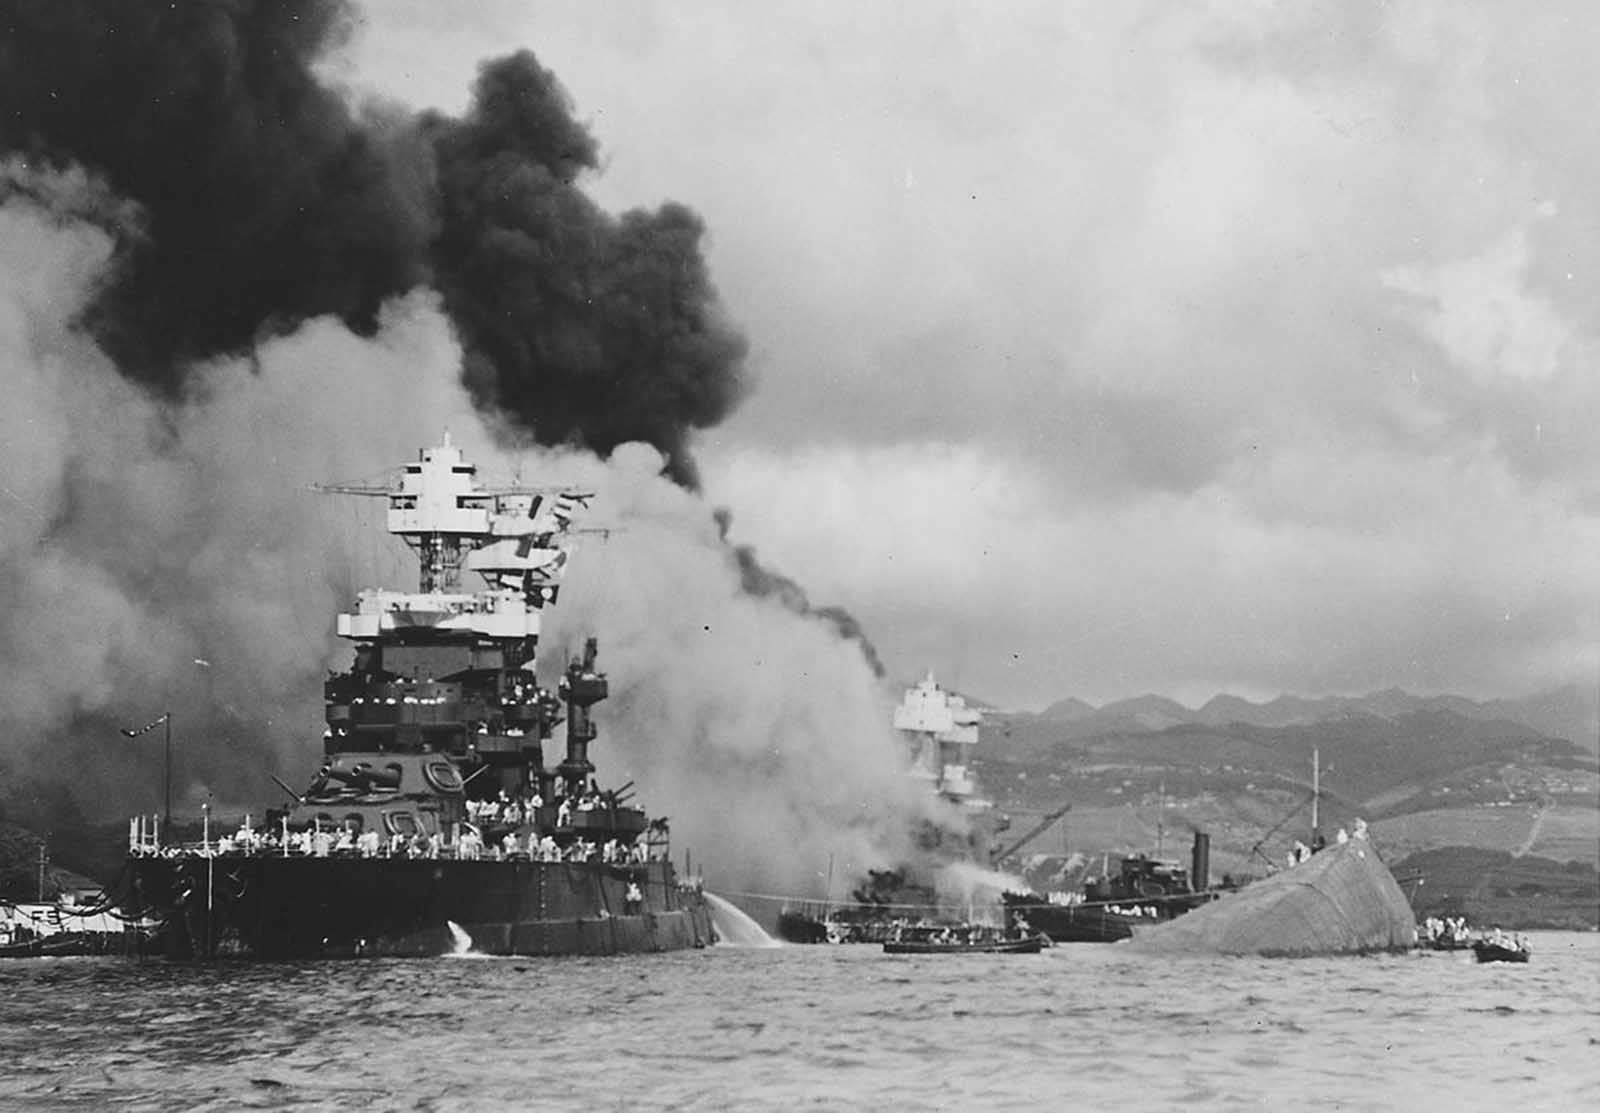 The USS Maryland, a battleship moored inboard of the USS Oklahoma, which capsized, was damaged slightly in the Japanese attack on Pearl Harbor on December 7, 1941.